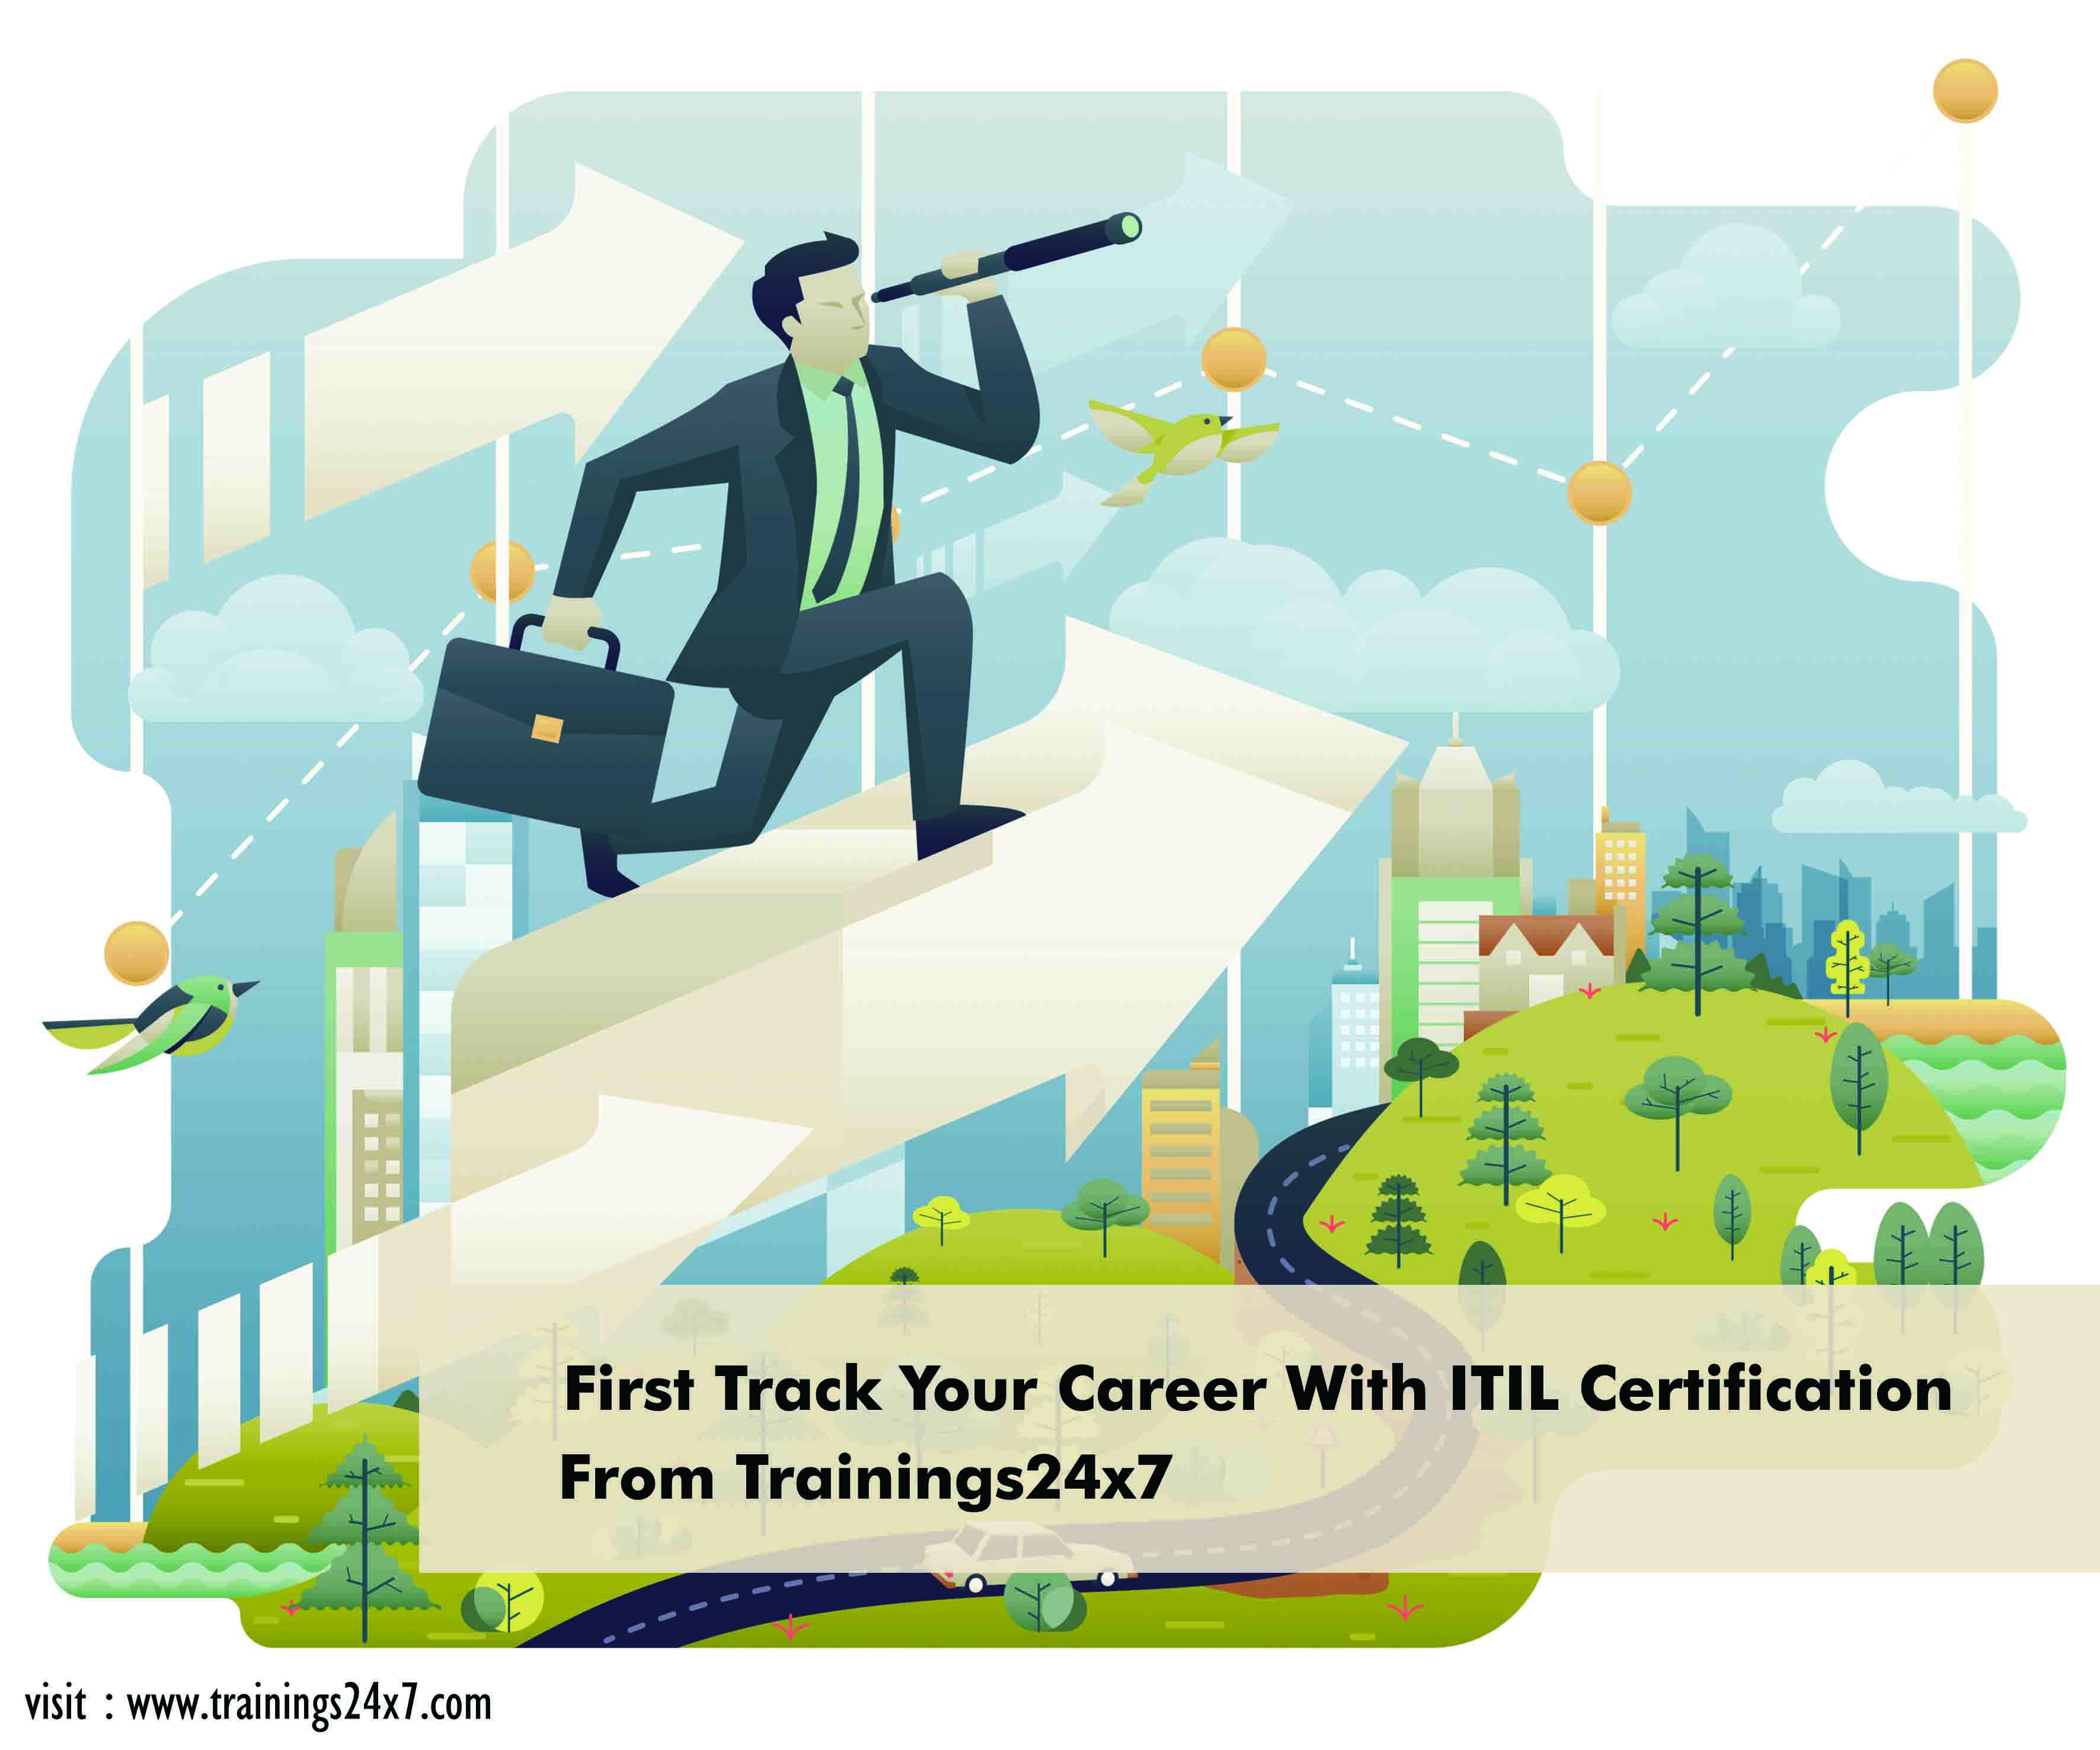 Itilfoundation certification training with trainings24x7 whats itilfoundation certification training with trainings24x7 whats included in the training trainings24x7 itil 2011 foundation handbook real itil foundation xflitez Image collections